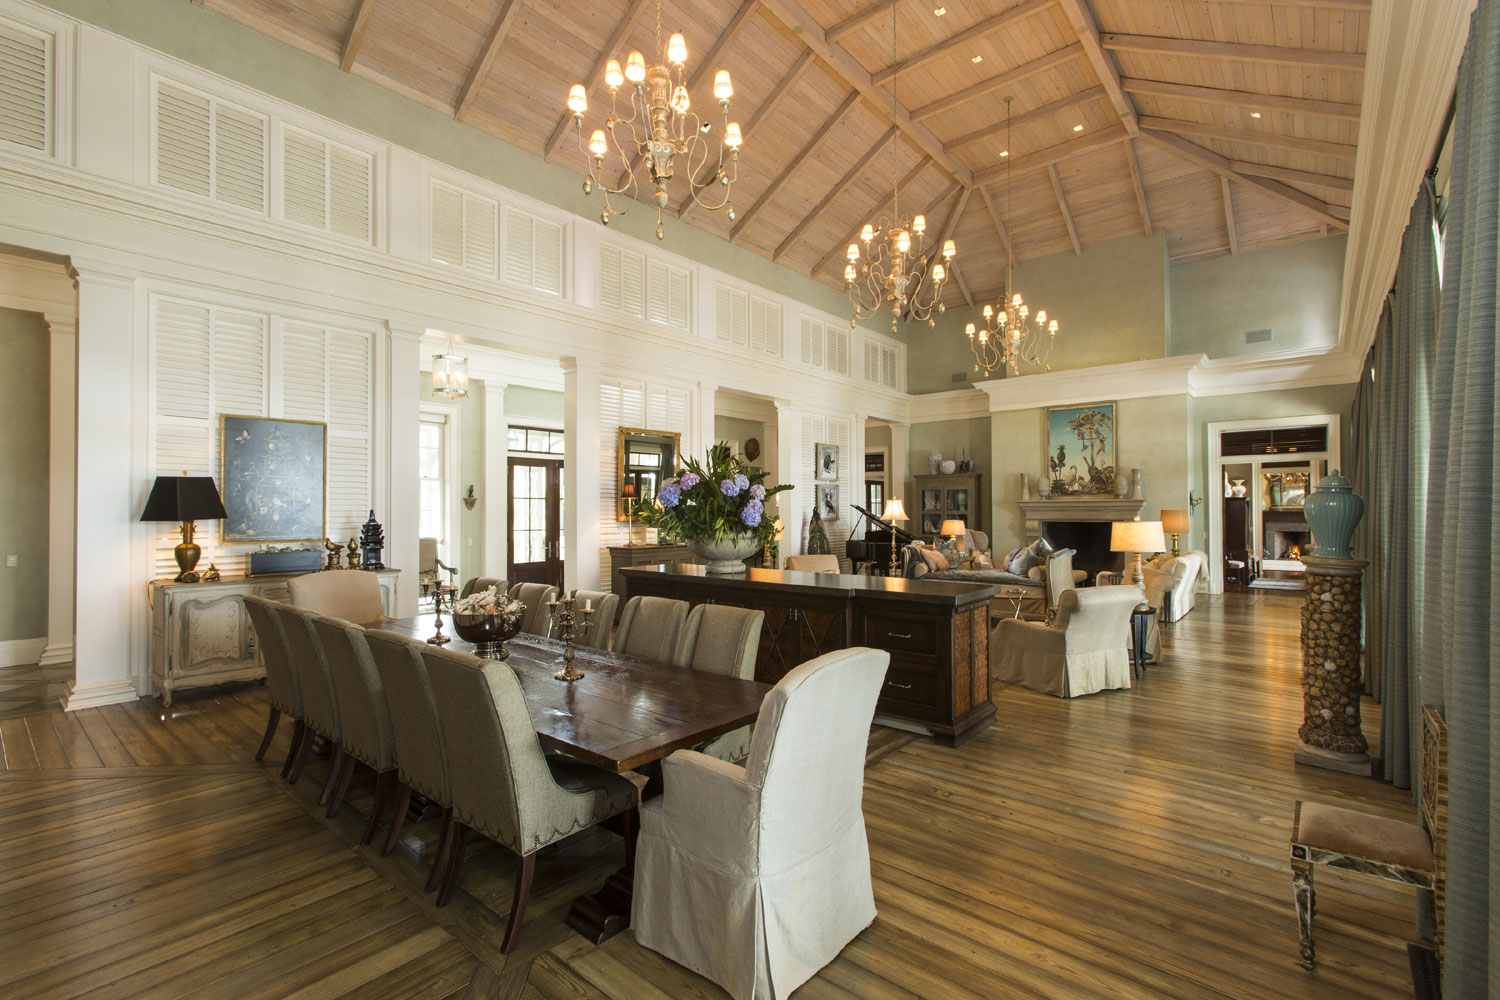 The most significant offering in Savannah, Georgia, the aptly named Riverbend estate boasts a dramatically staged living room with panoramic views over the Wilmington River from its covered terraces.